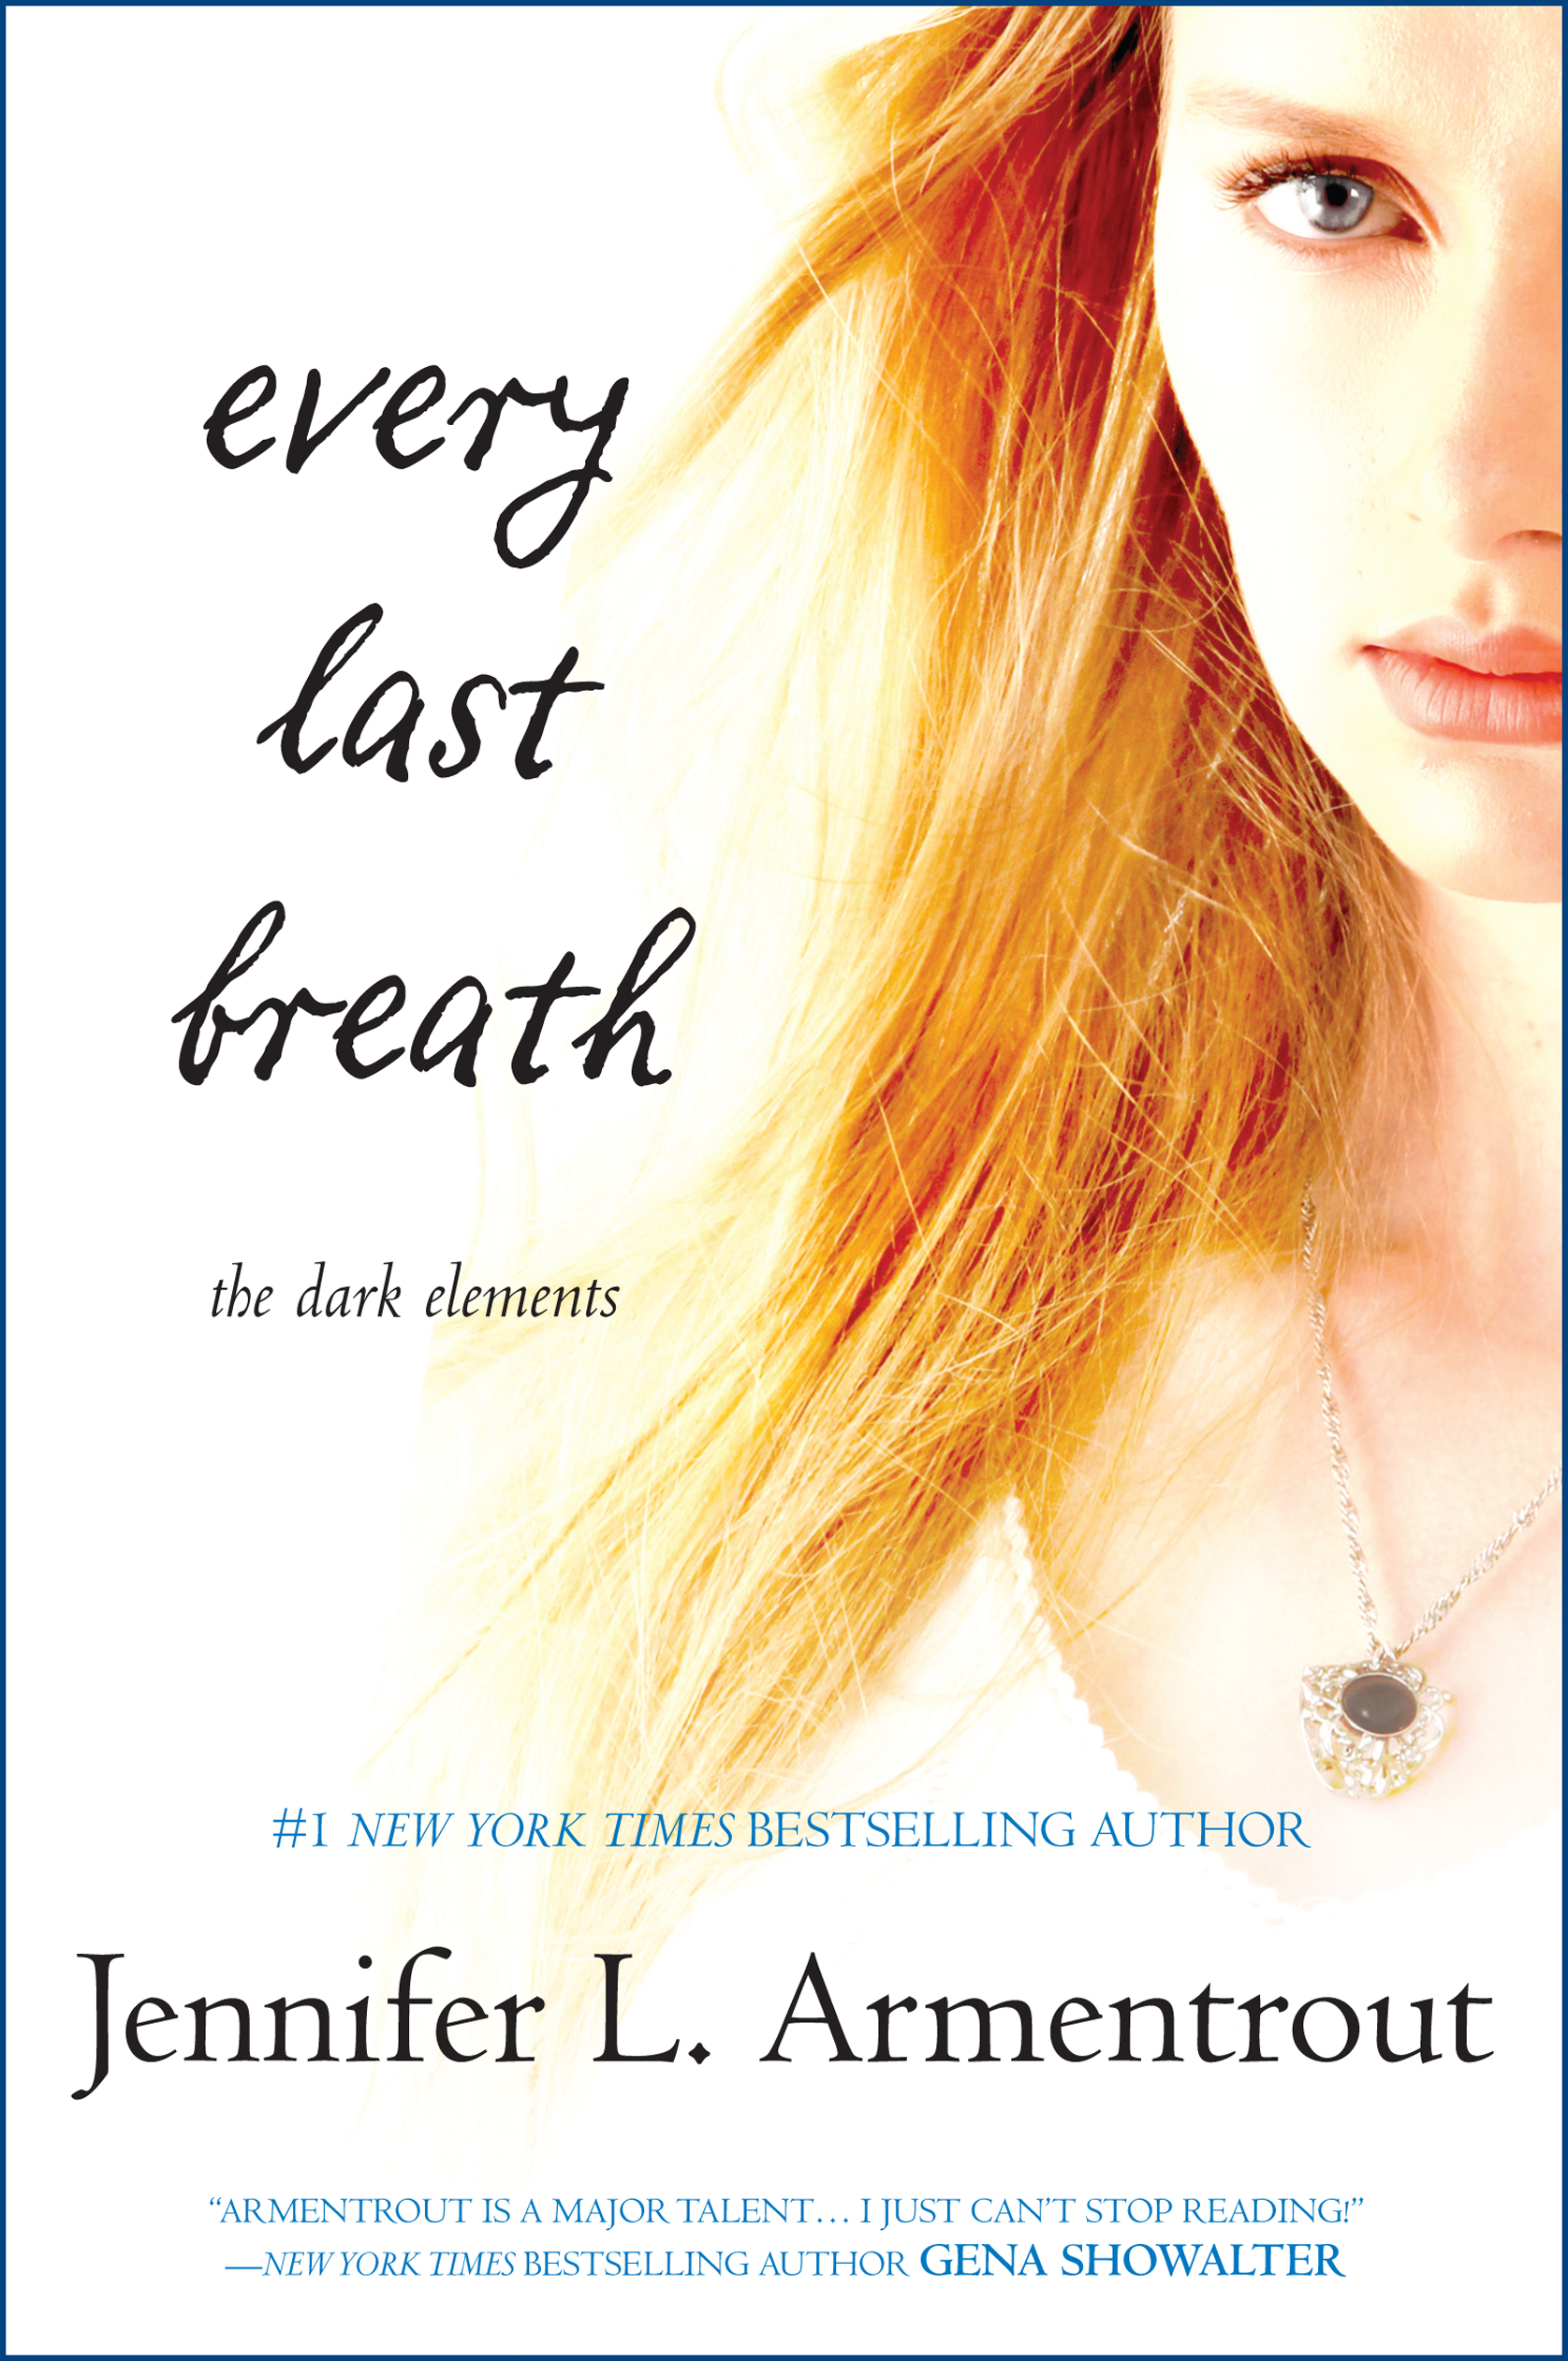 Release Blitz: Every Last Breath by Jennifer L. Armentrout